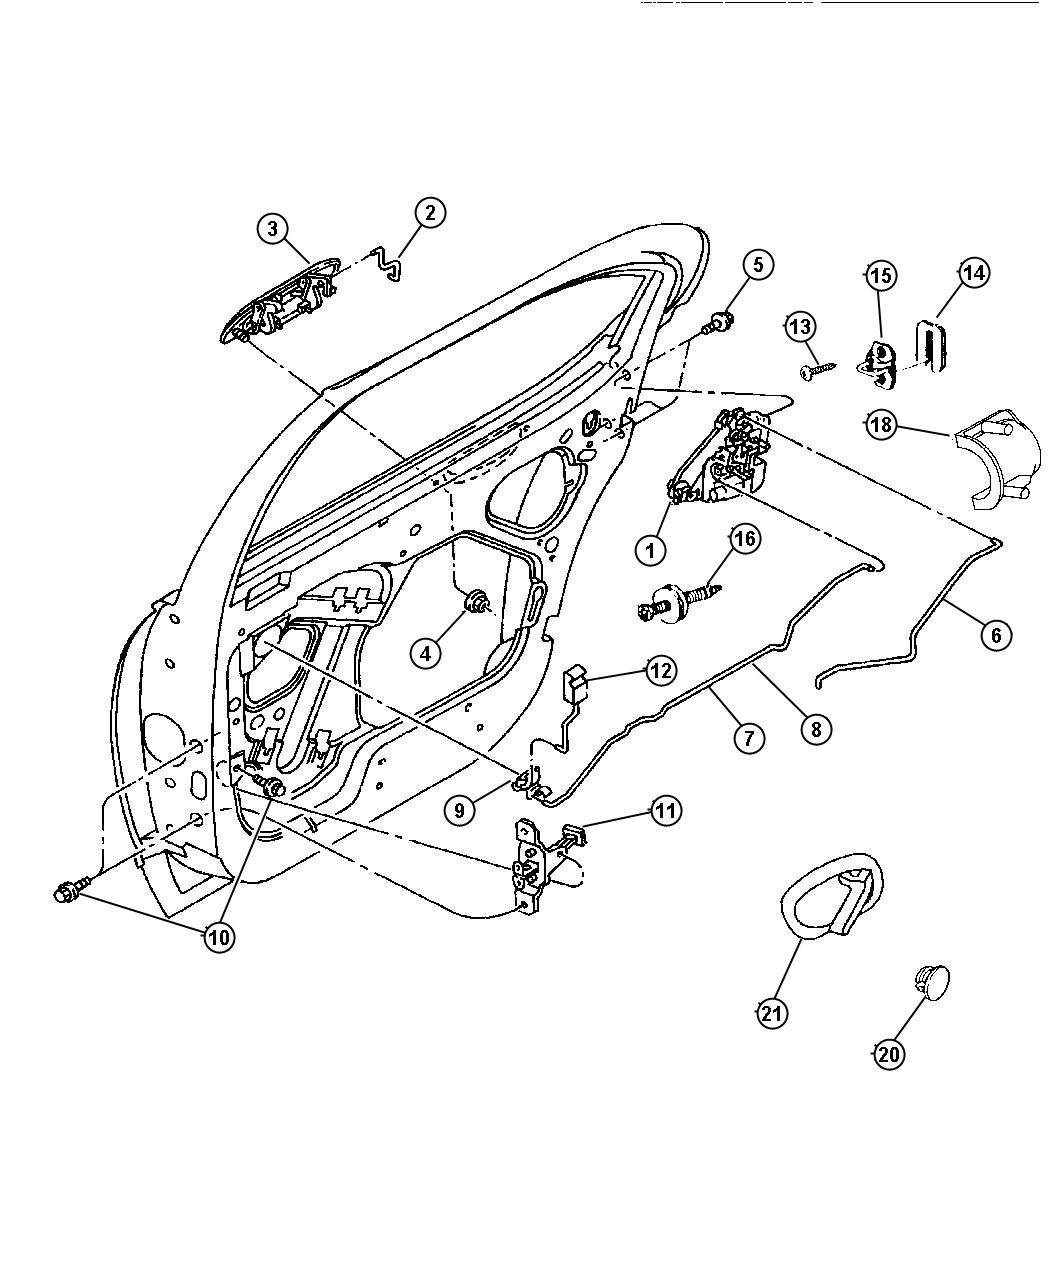 Service manual [How To Fix 1998 Plymouth Breeze Trunk